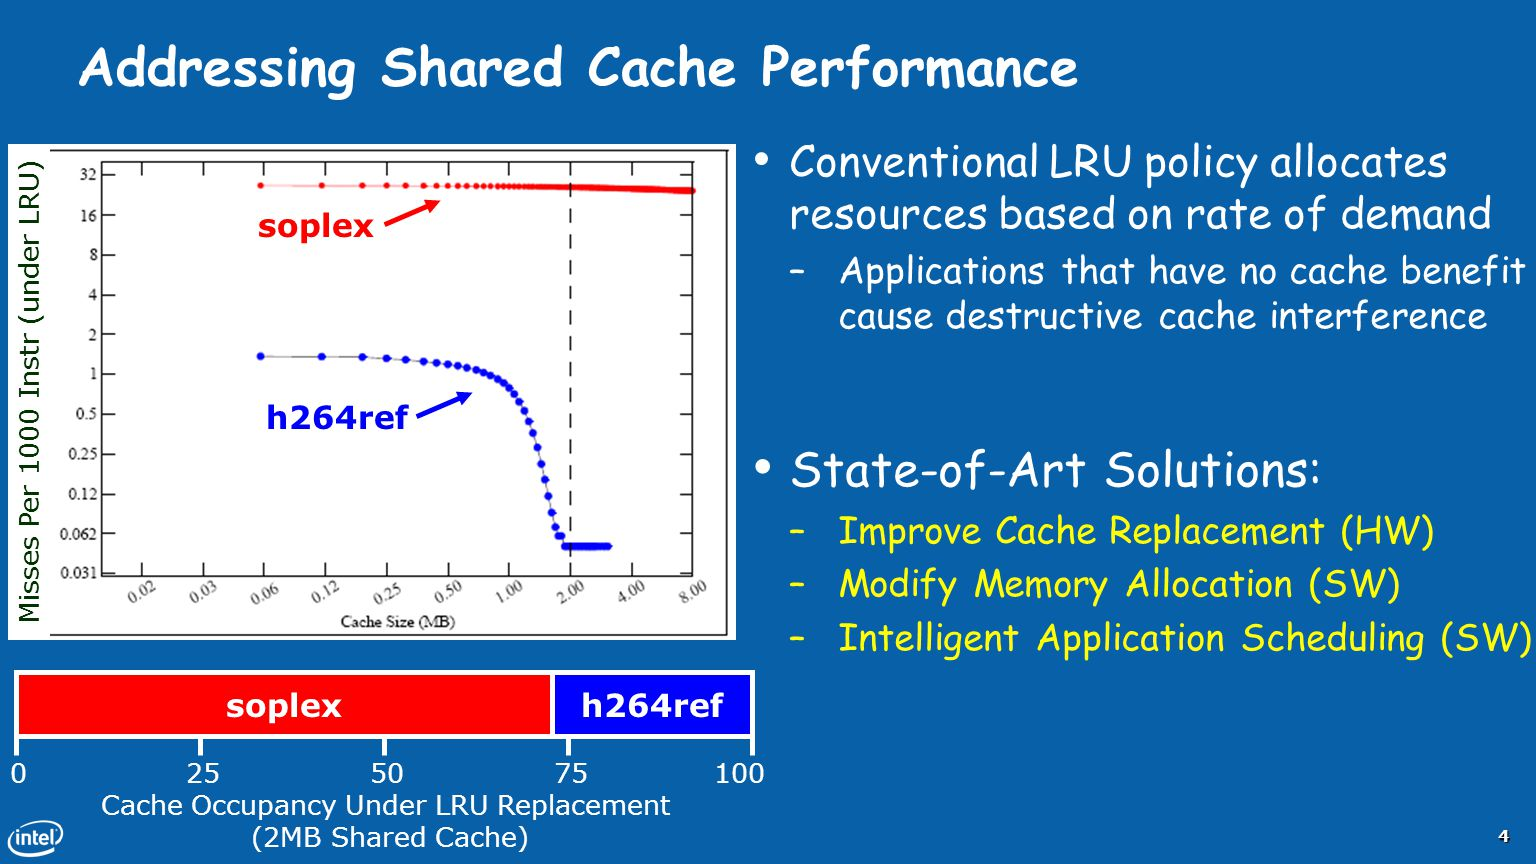 Addressing Shared Cache Performance